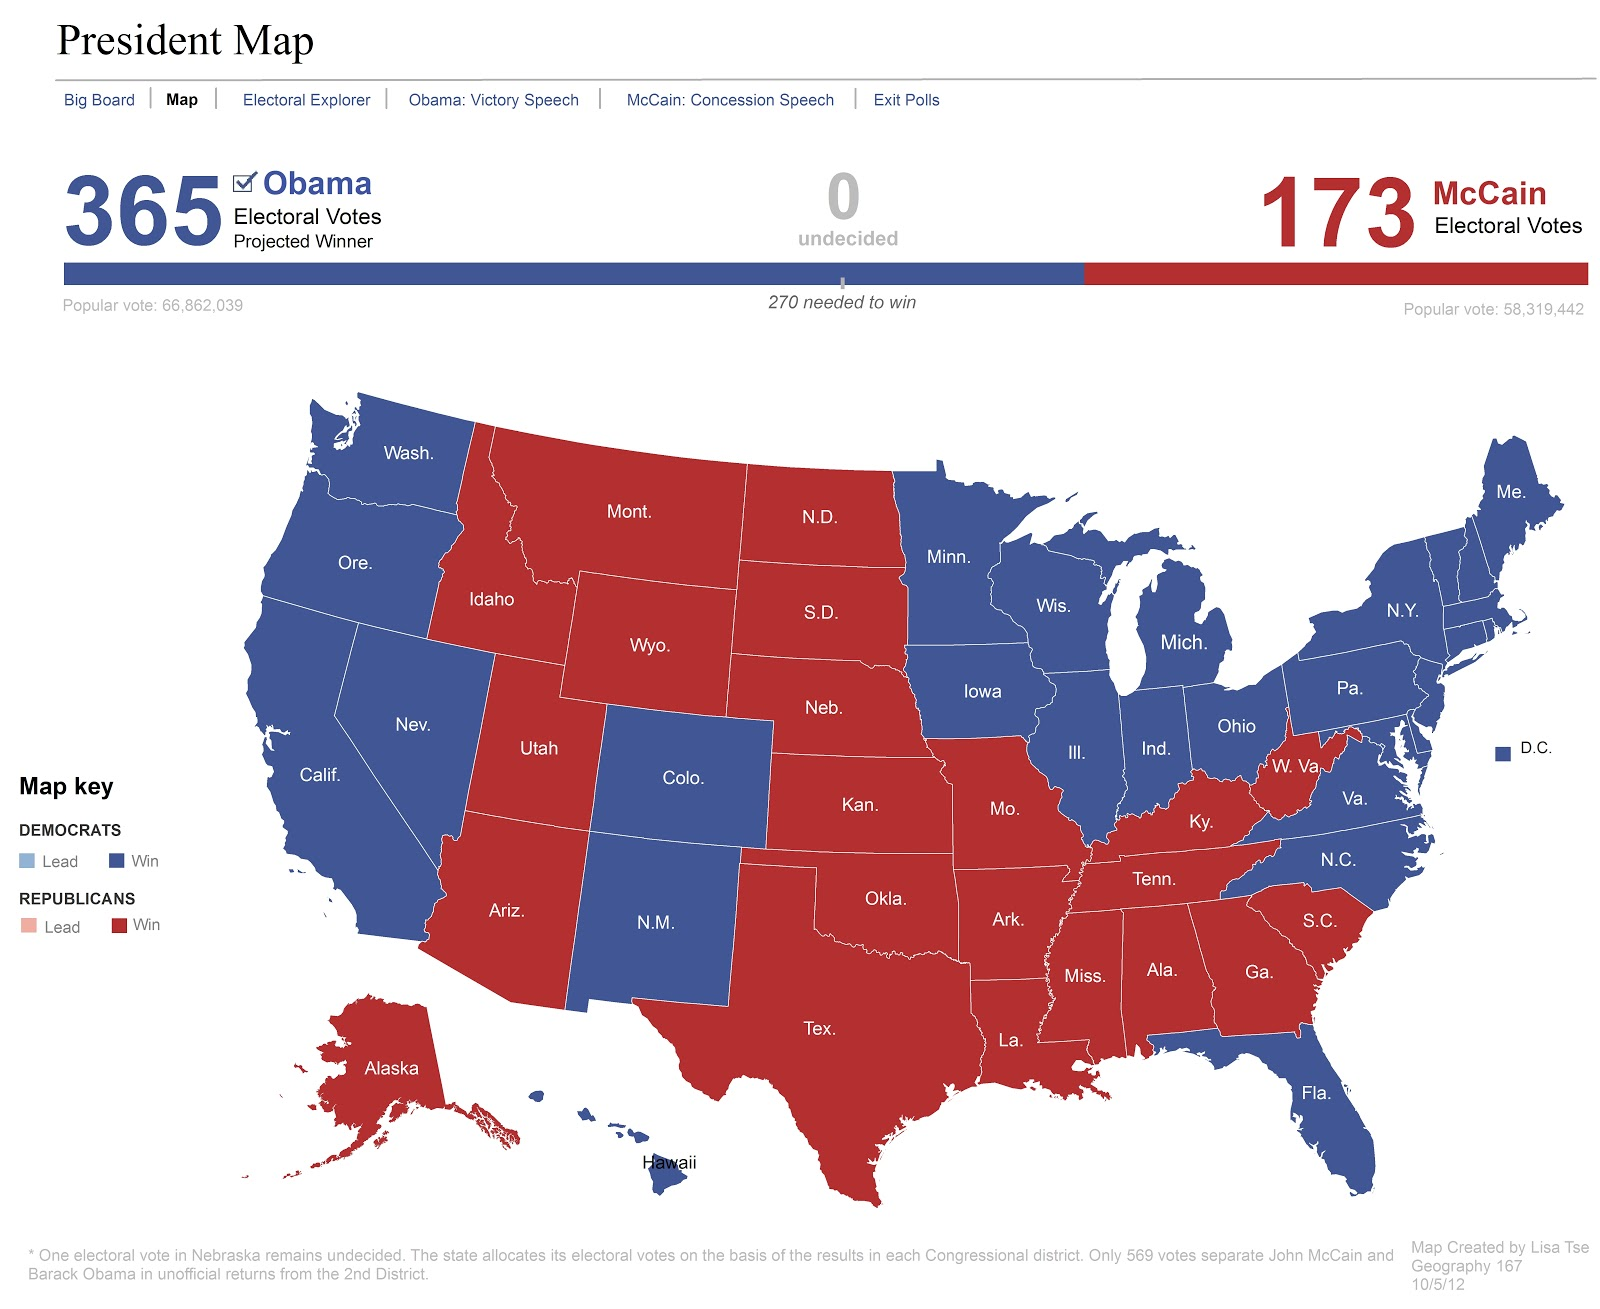 2008 presidential election map replication posted 26th december 2012 by lisa tse